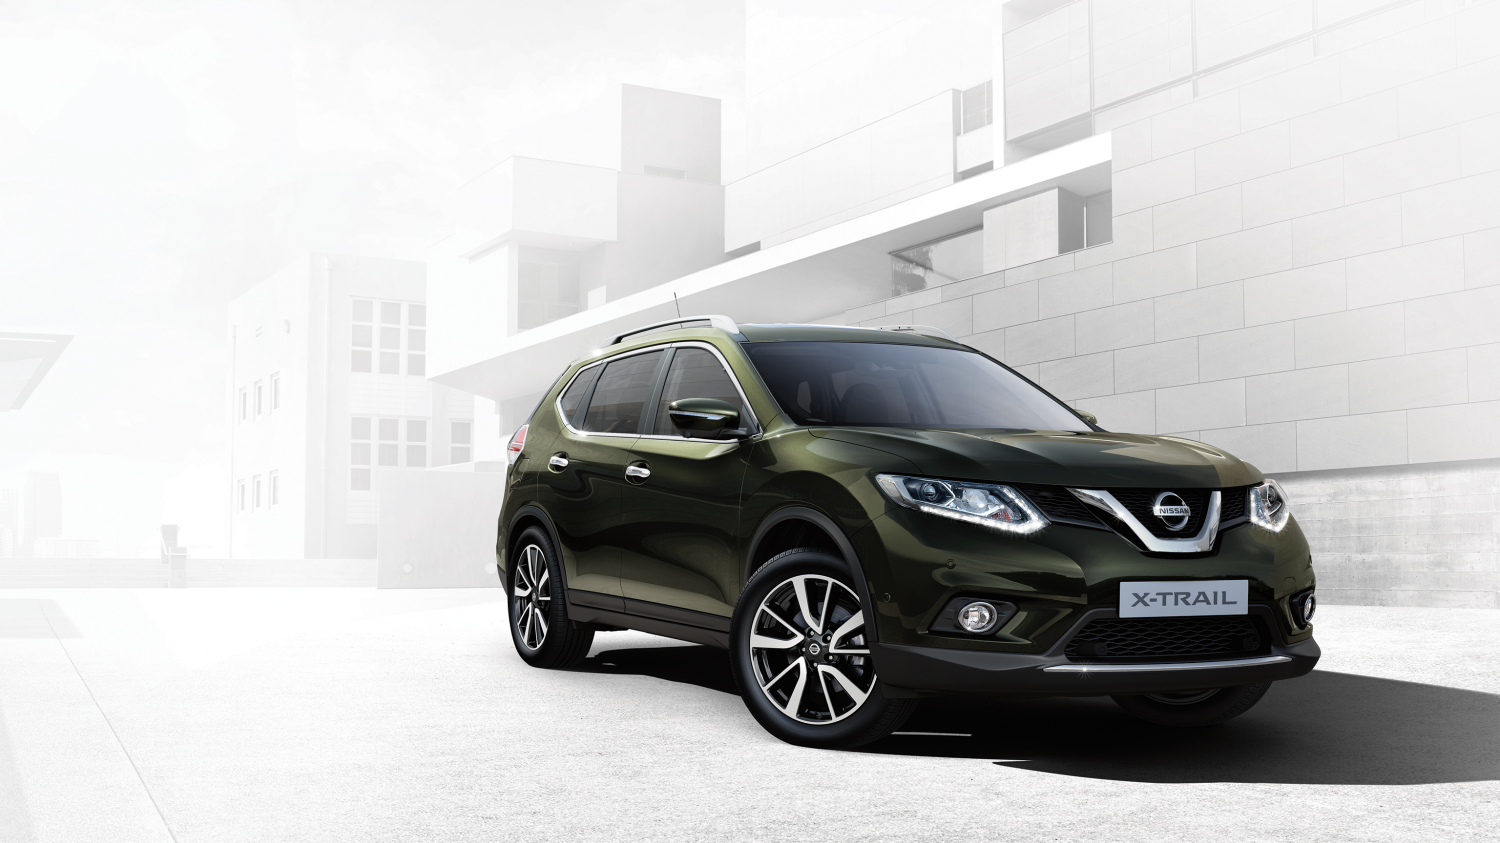 7 seater & 4x4 car design - 4x4 exterior - Green | Nissan X-Trail